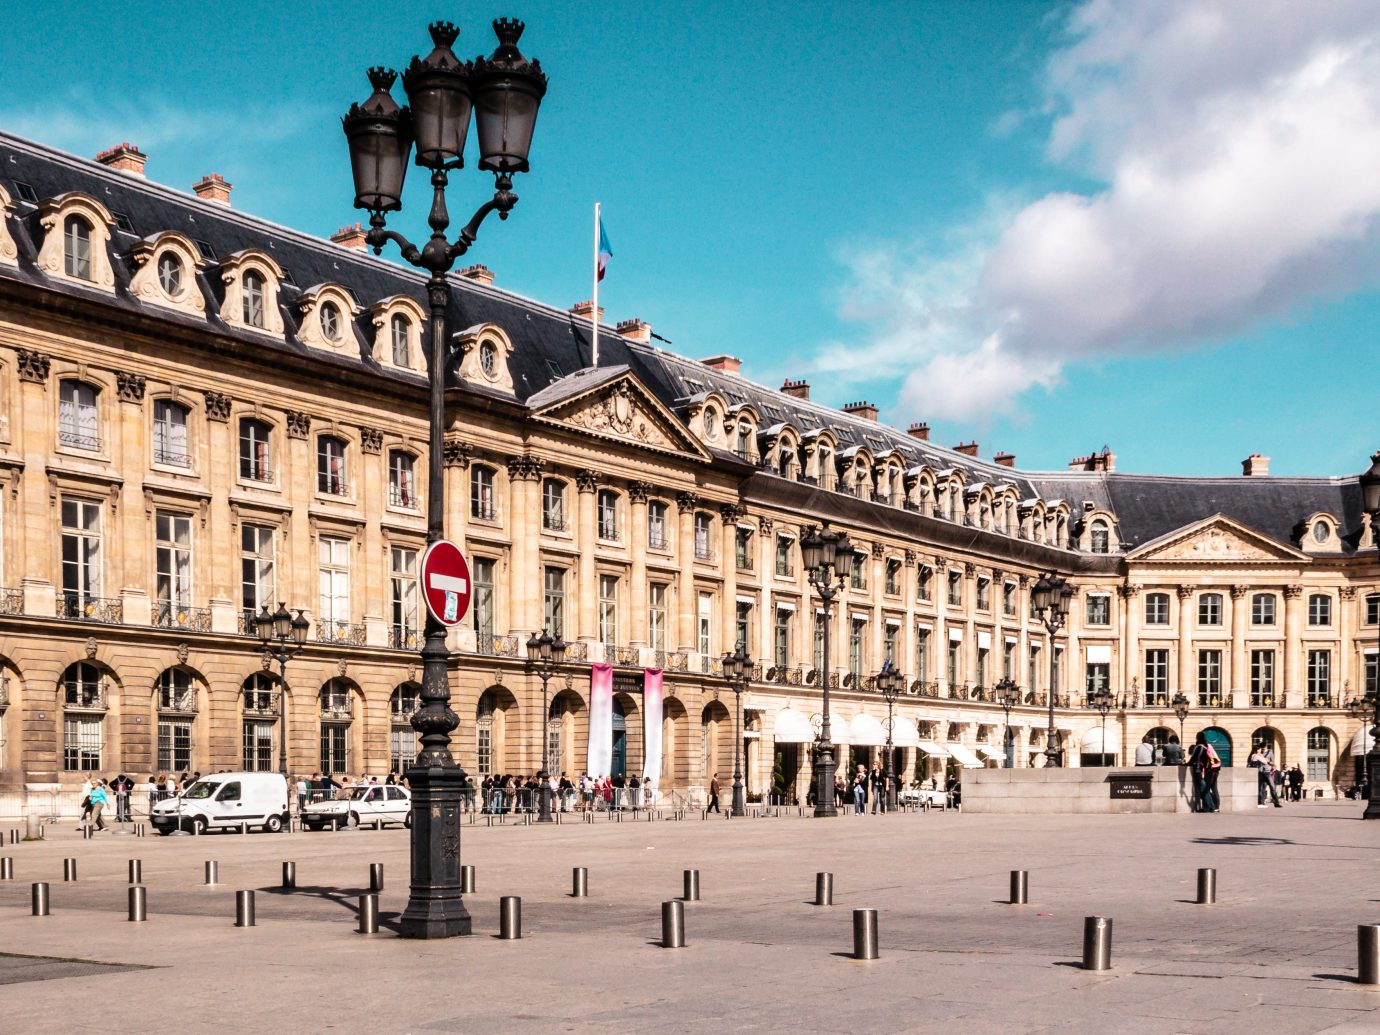 Photo of a Sunny Day in Place Vendome in Paris, France